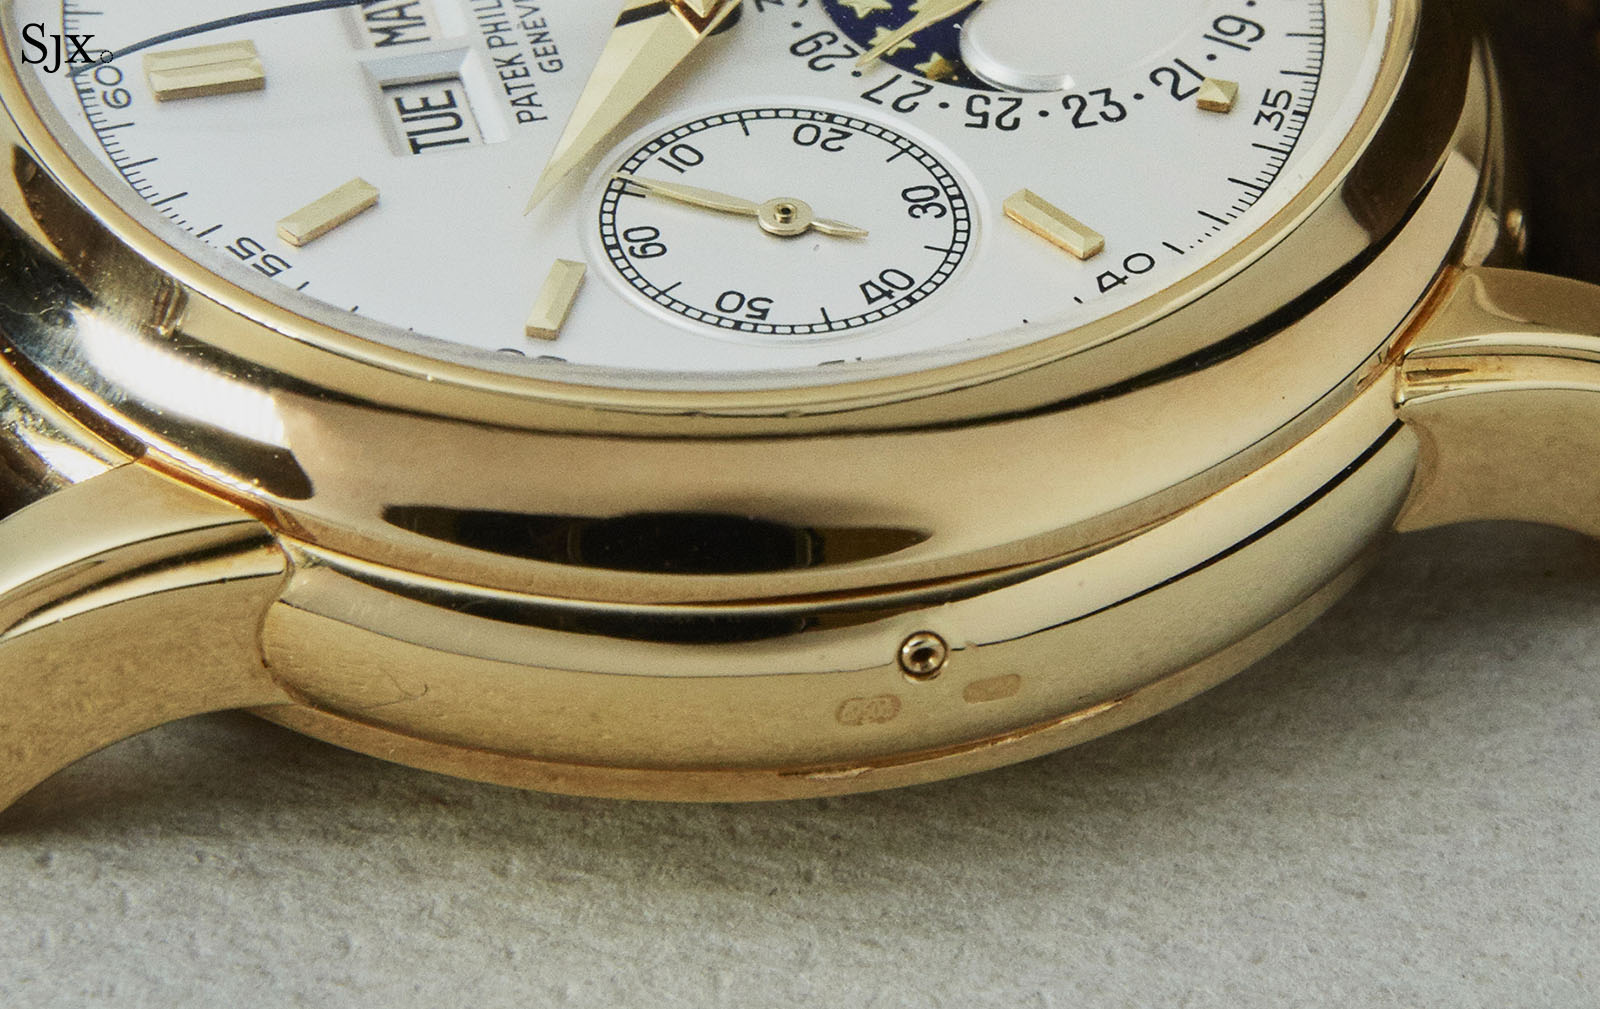 Patek Philippe ref. 2499 4th series 3